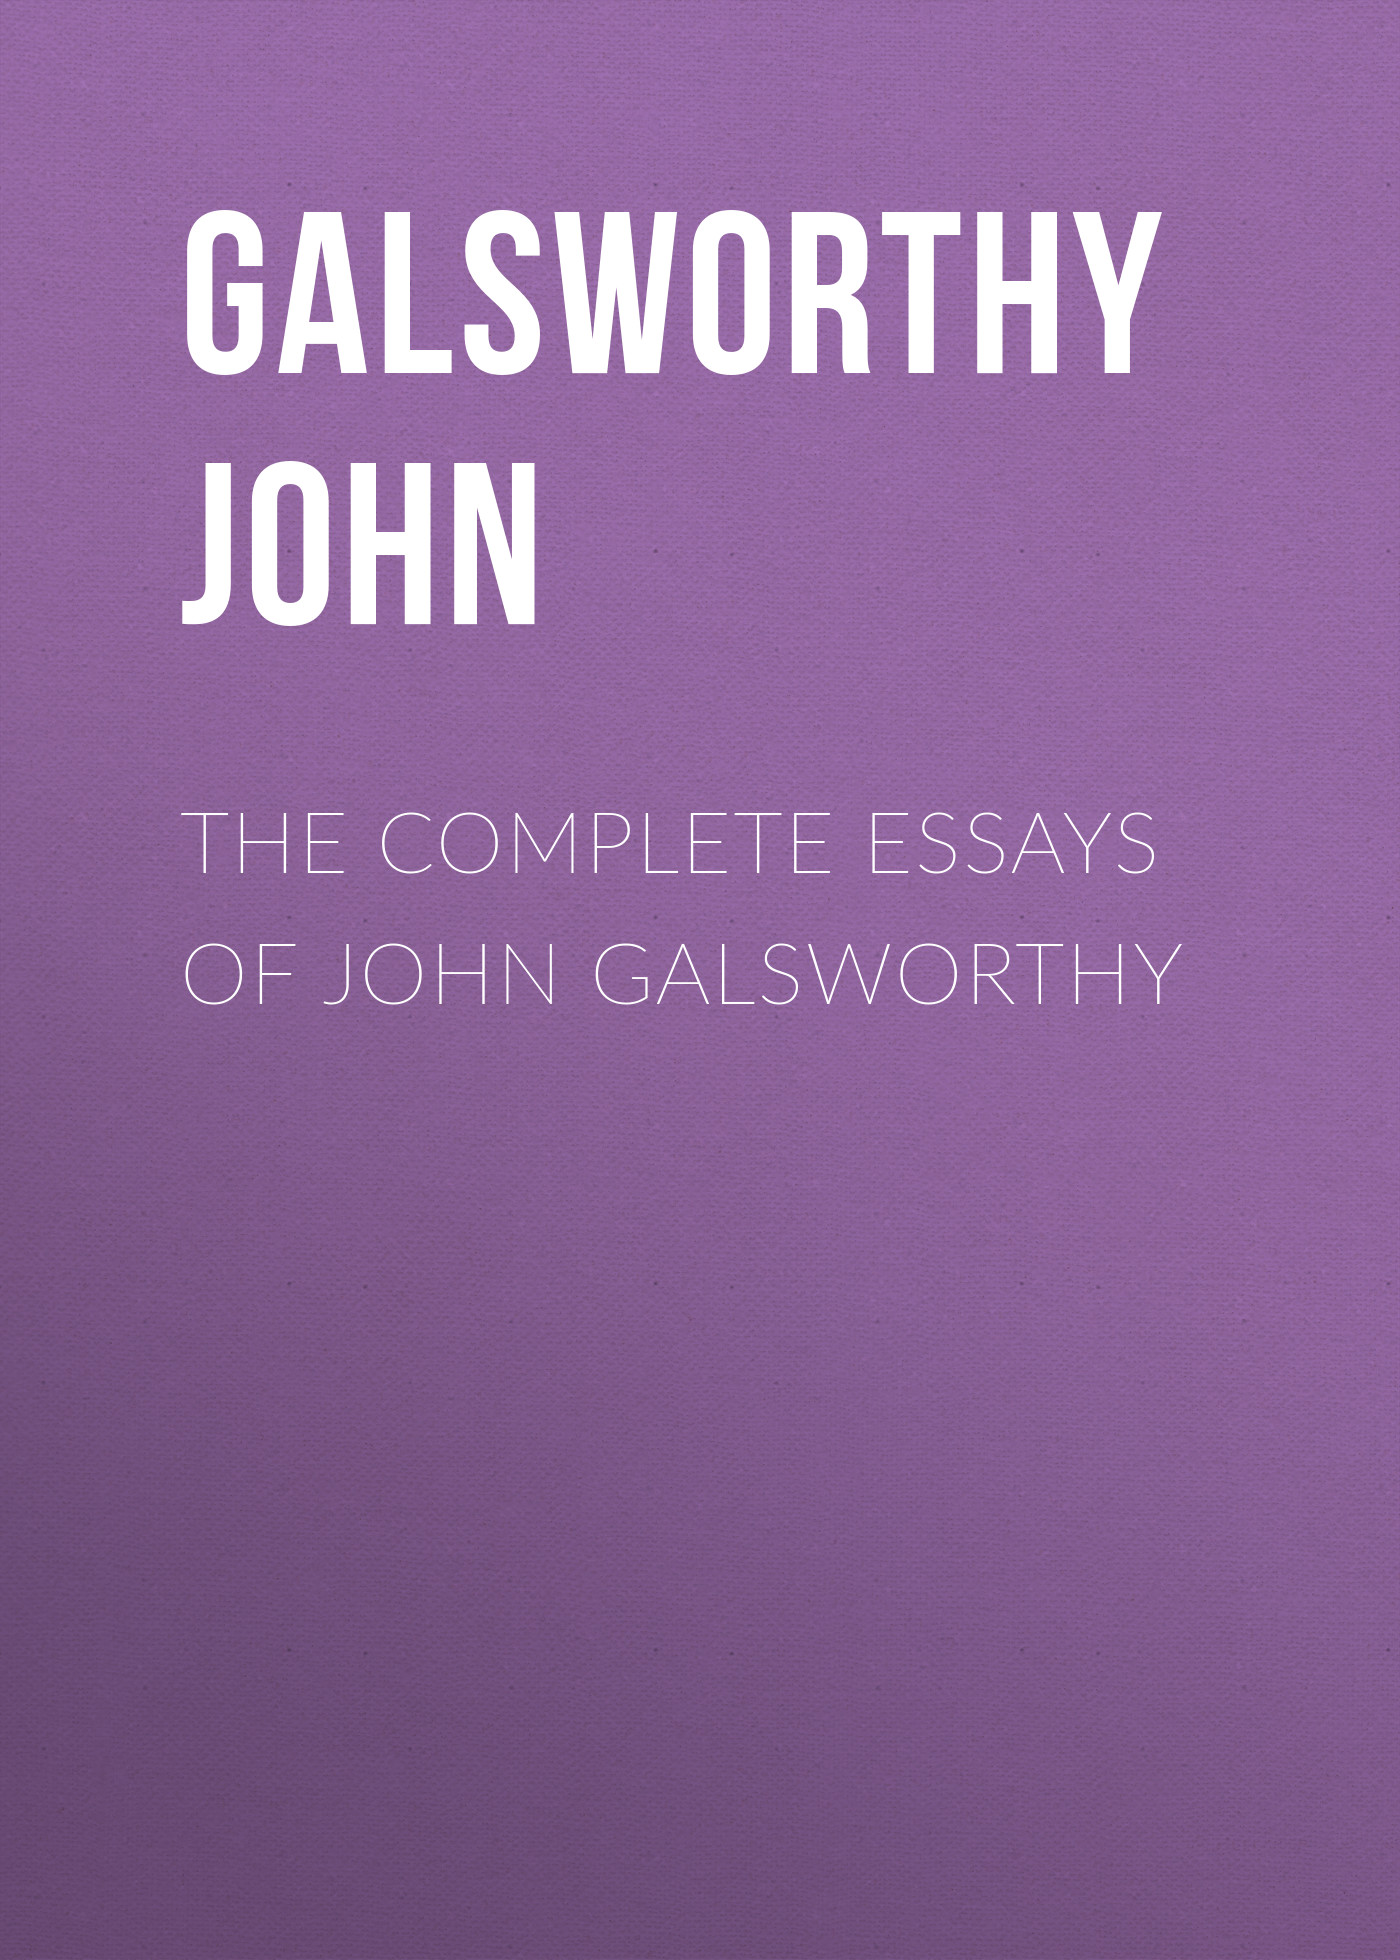 Galsworthy John The Complete Essays of John Galsworthy